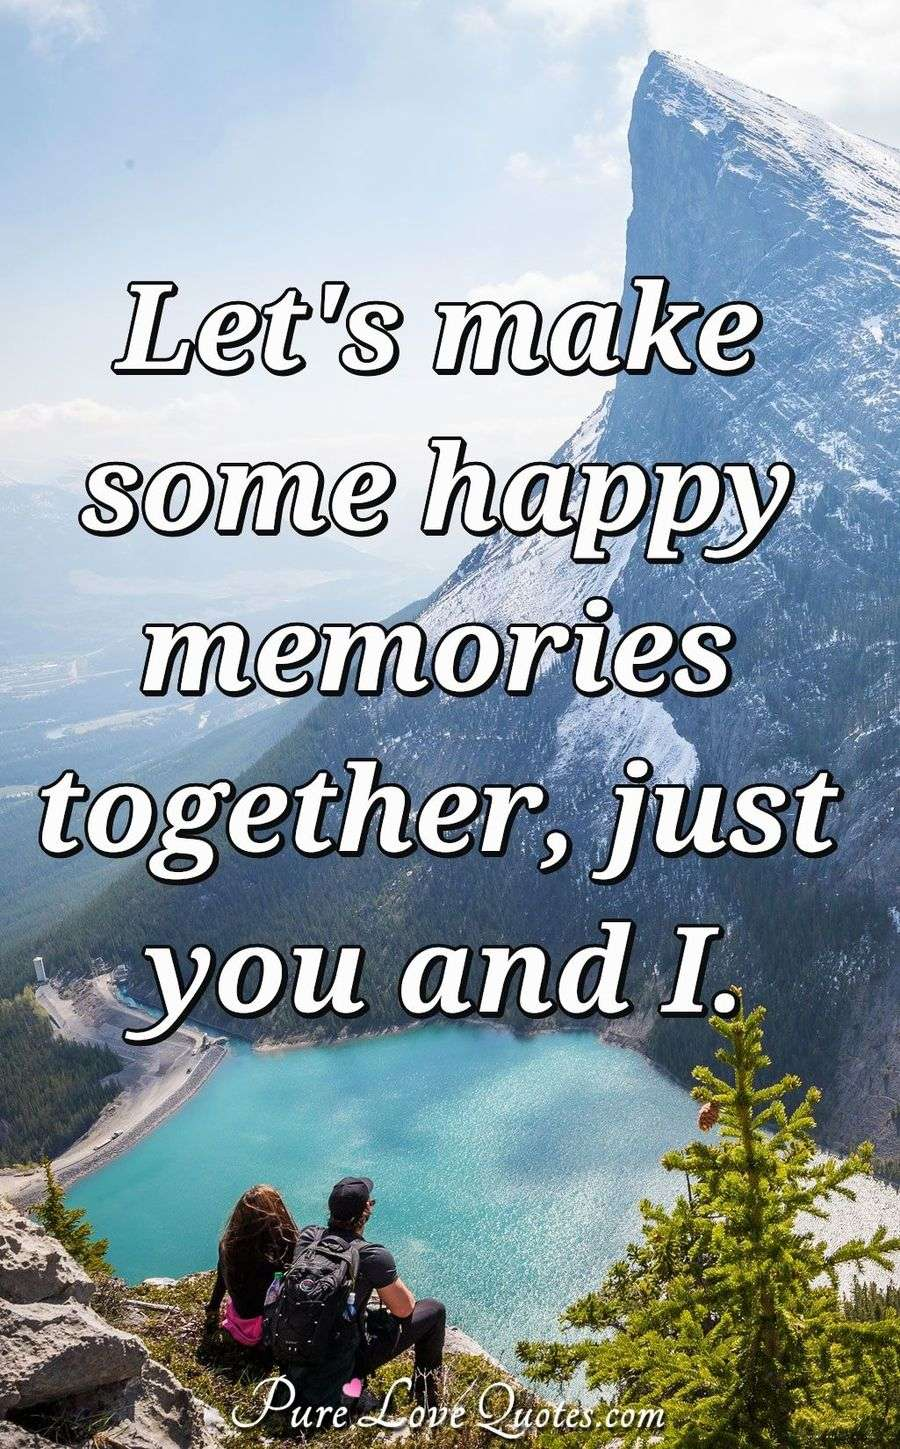 Let's make some happy memories together, just you and I. - Anonymous